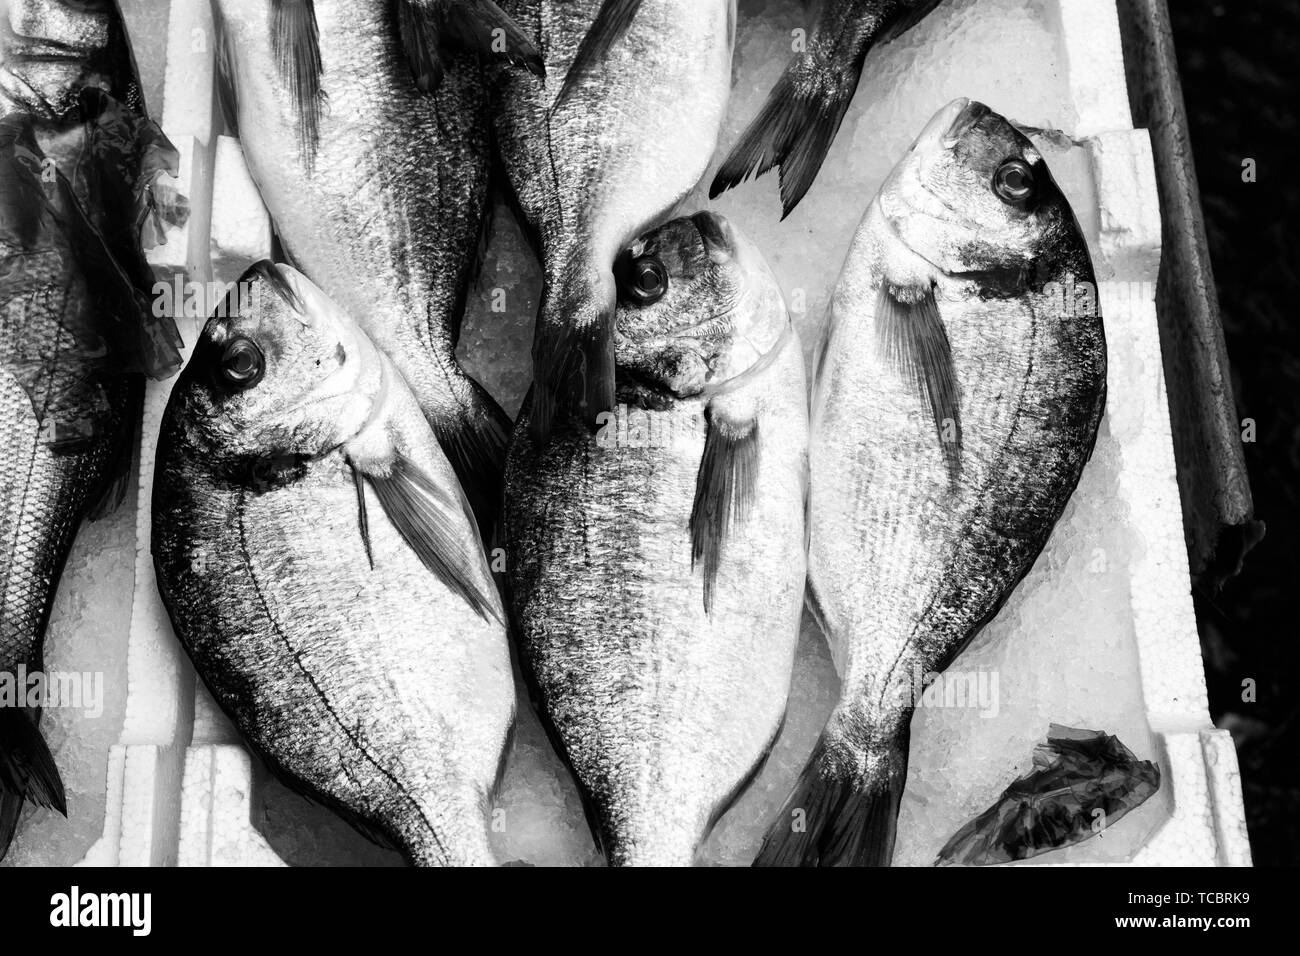 Mediterranean fish exposed. - Stock Image